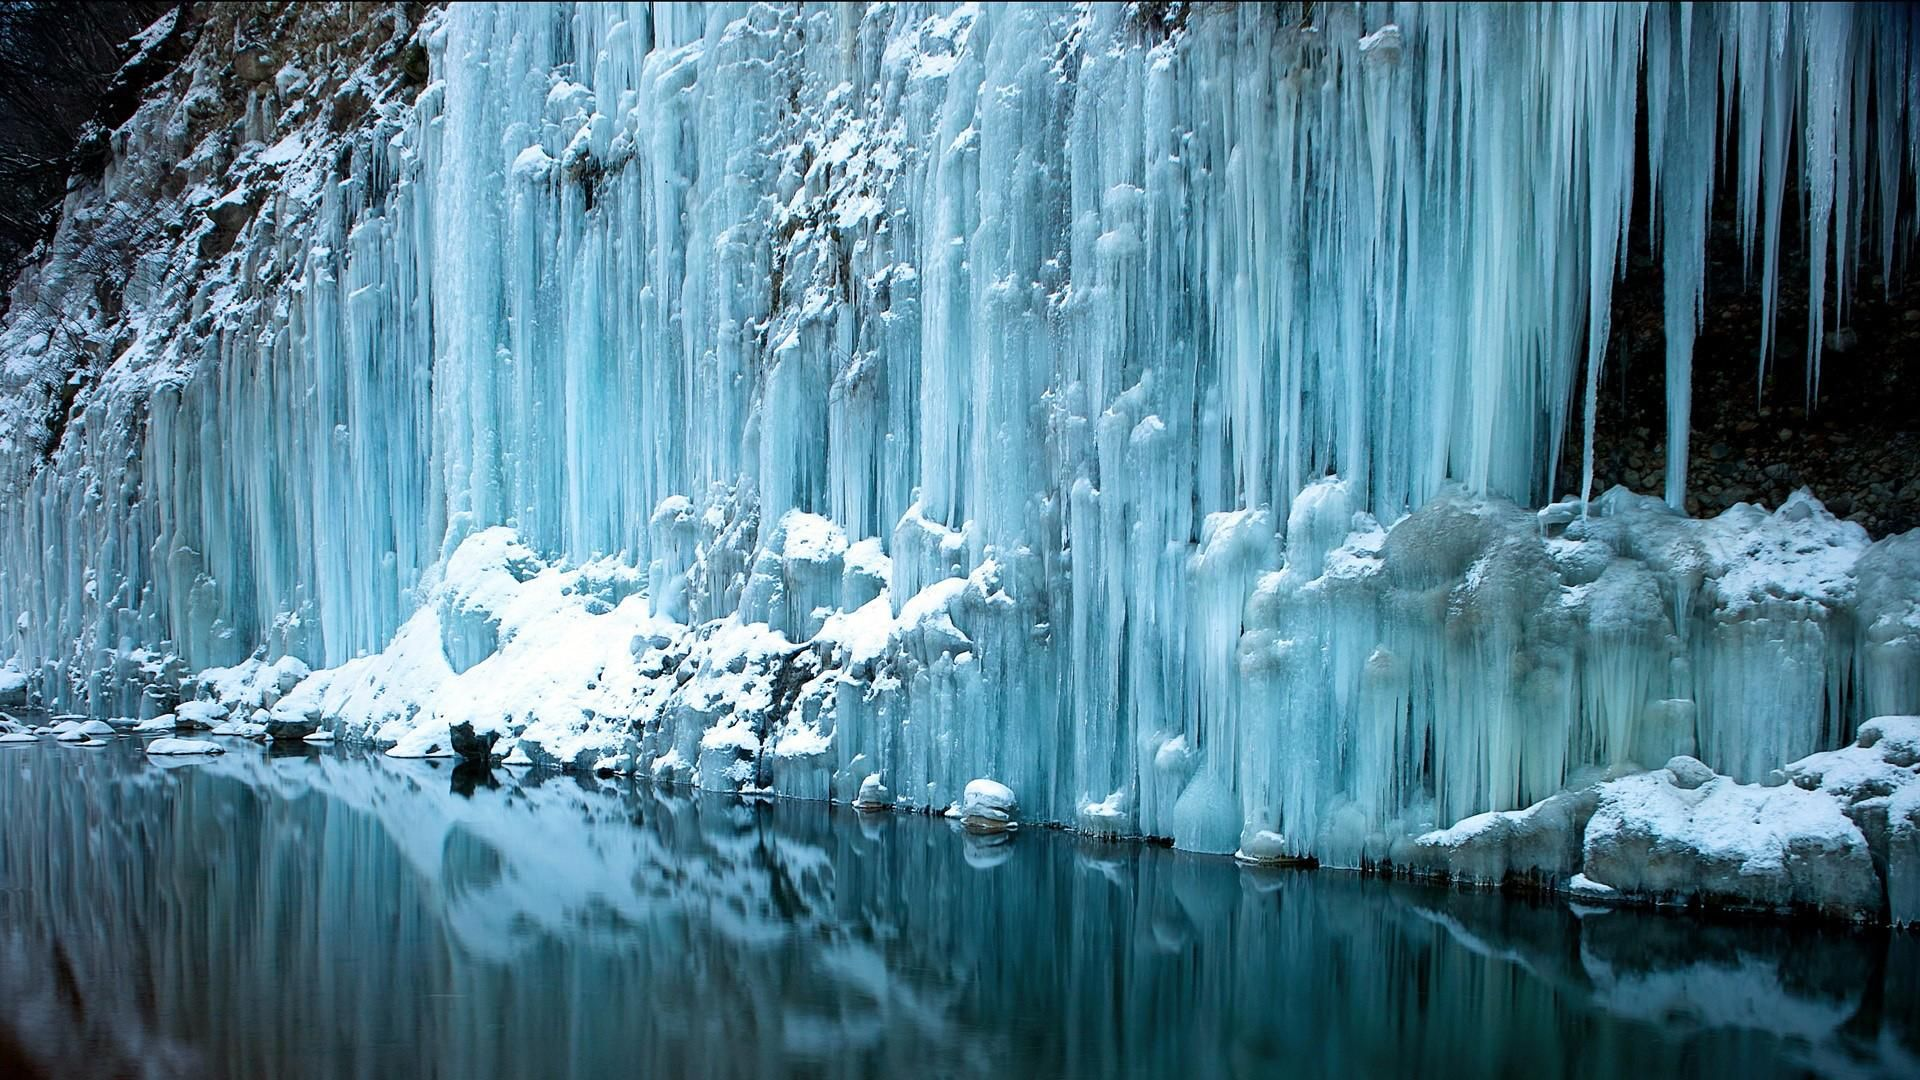 icicles images - Google Search